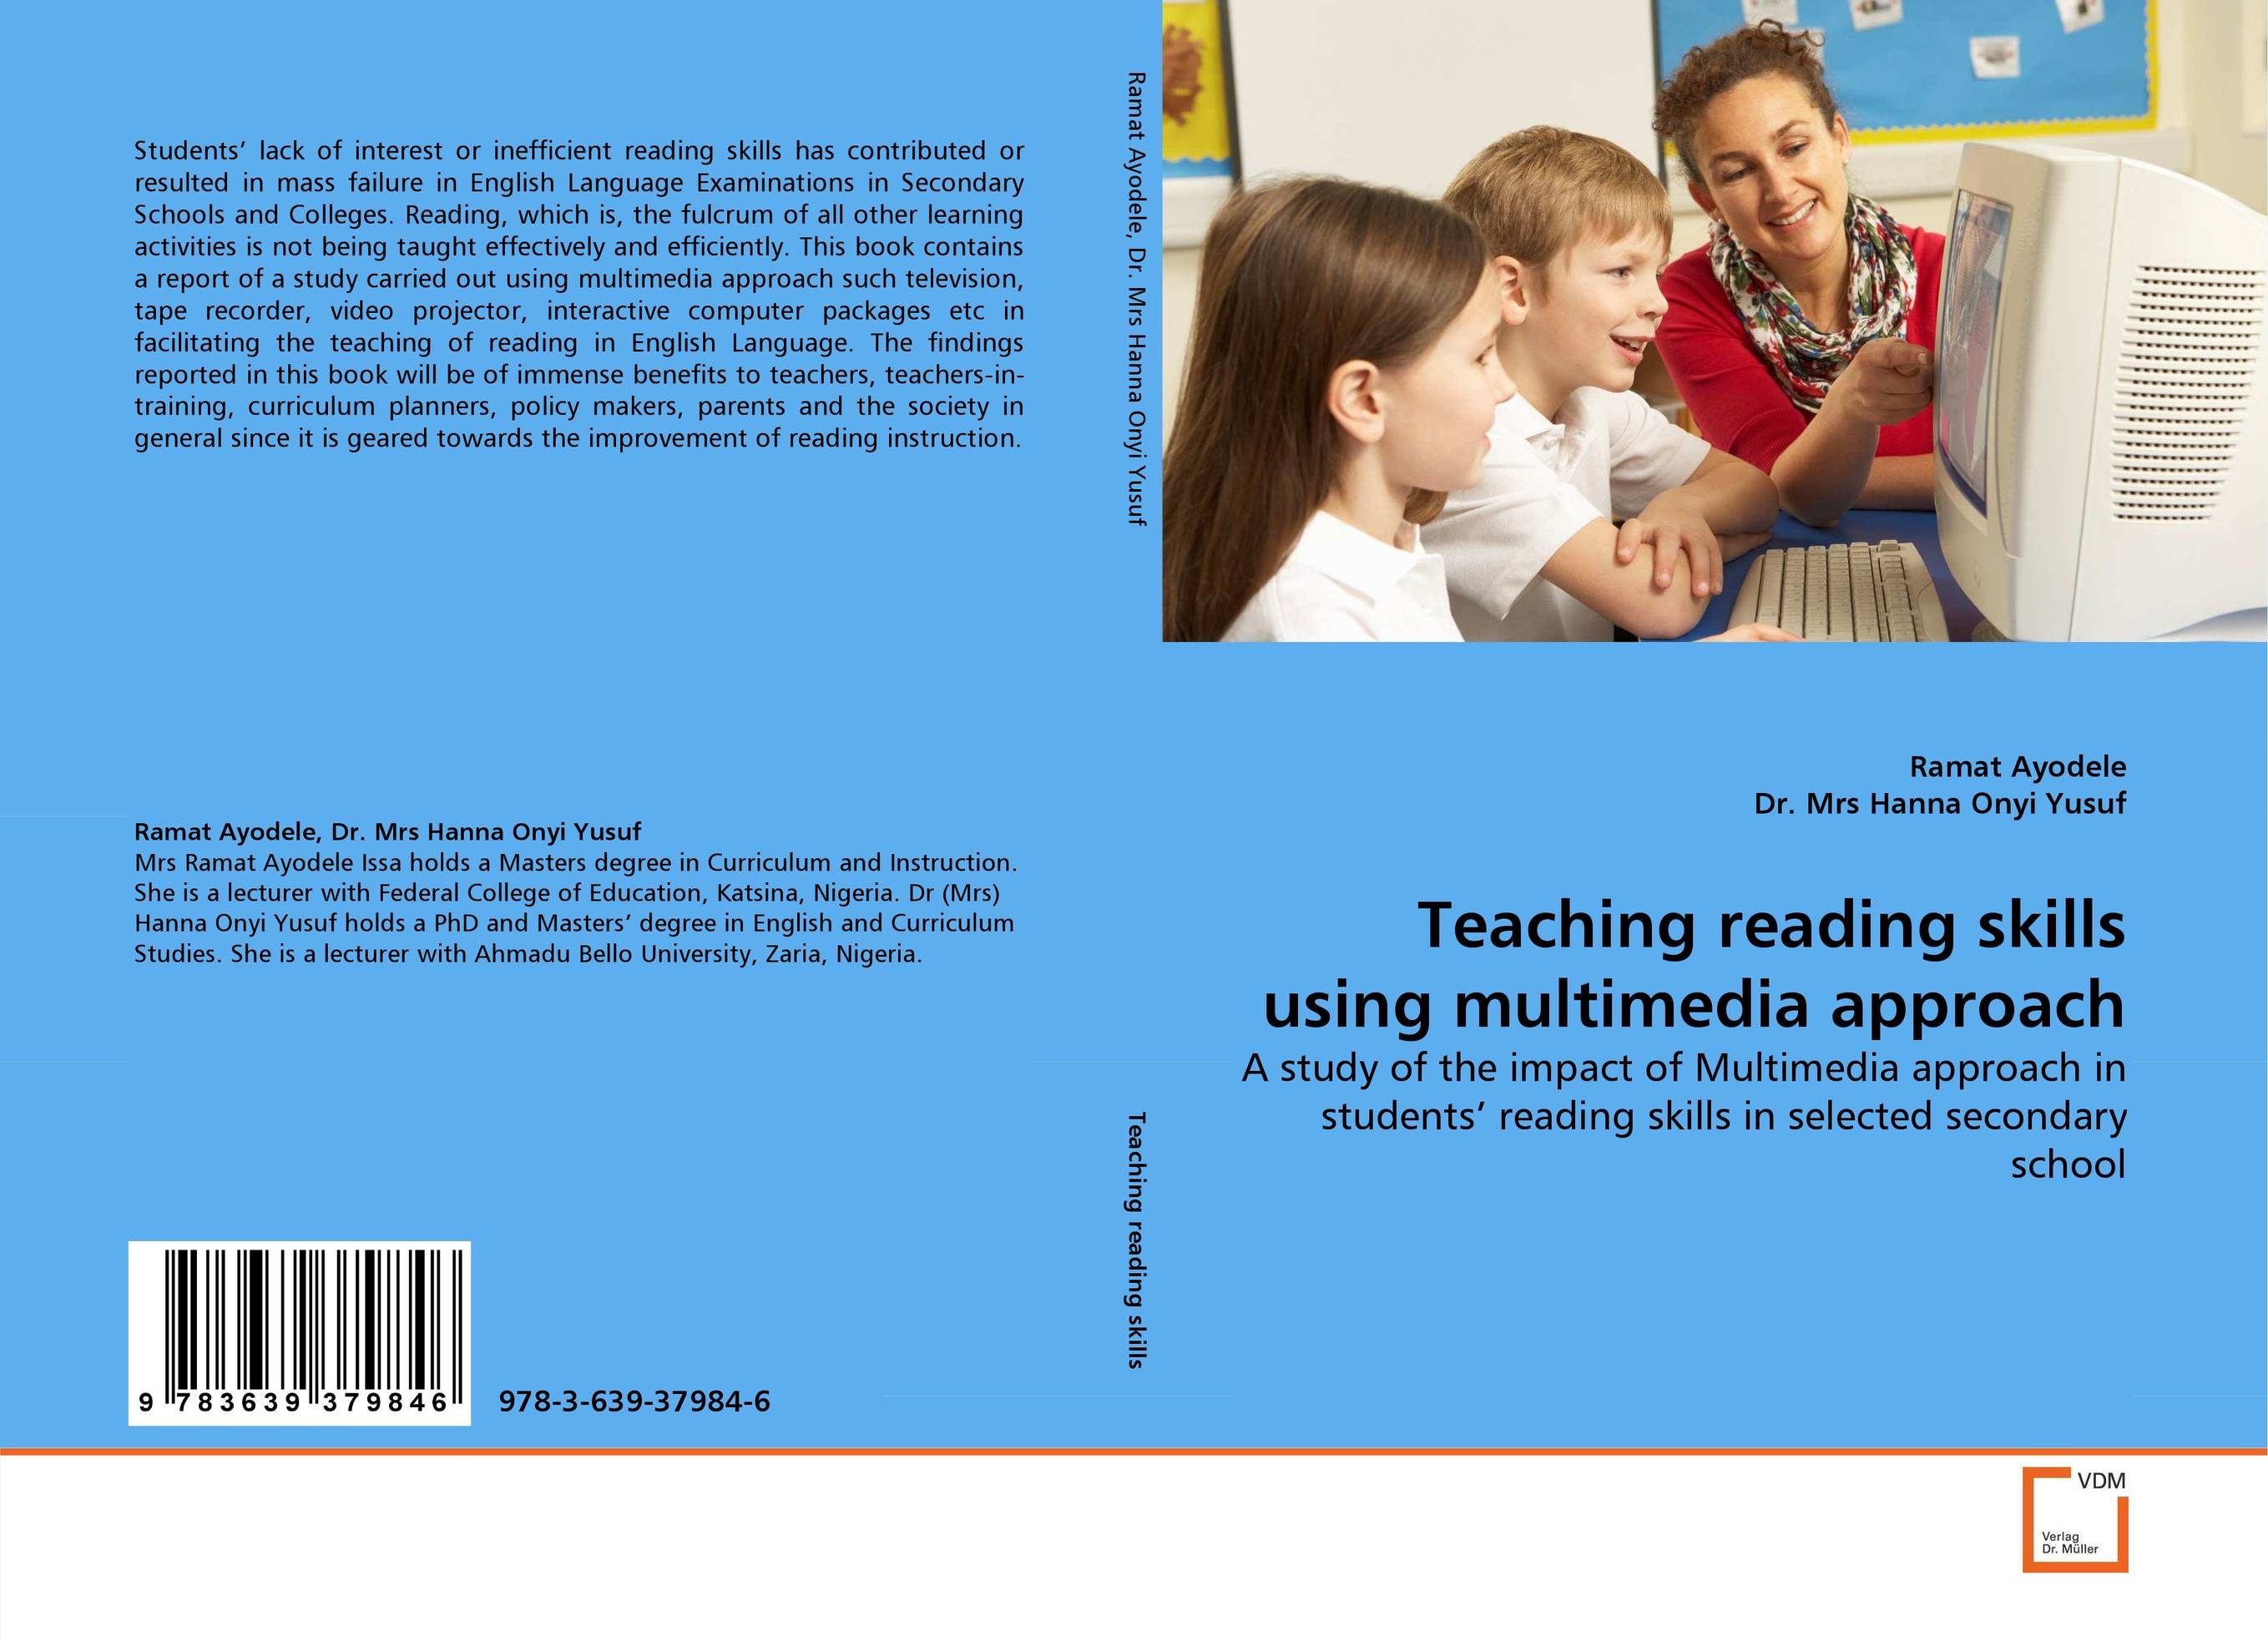 9783639379846 Teaching reading skills using multimedia approach Ramat Ayodele